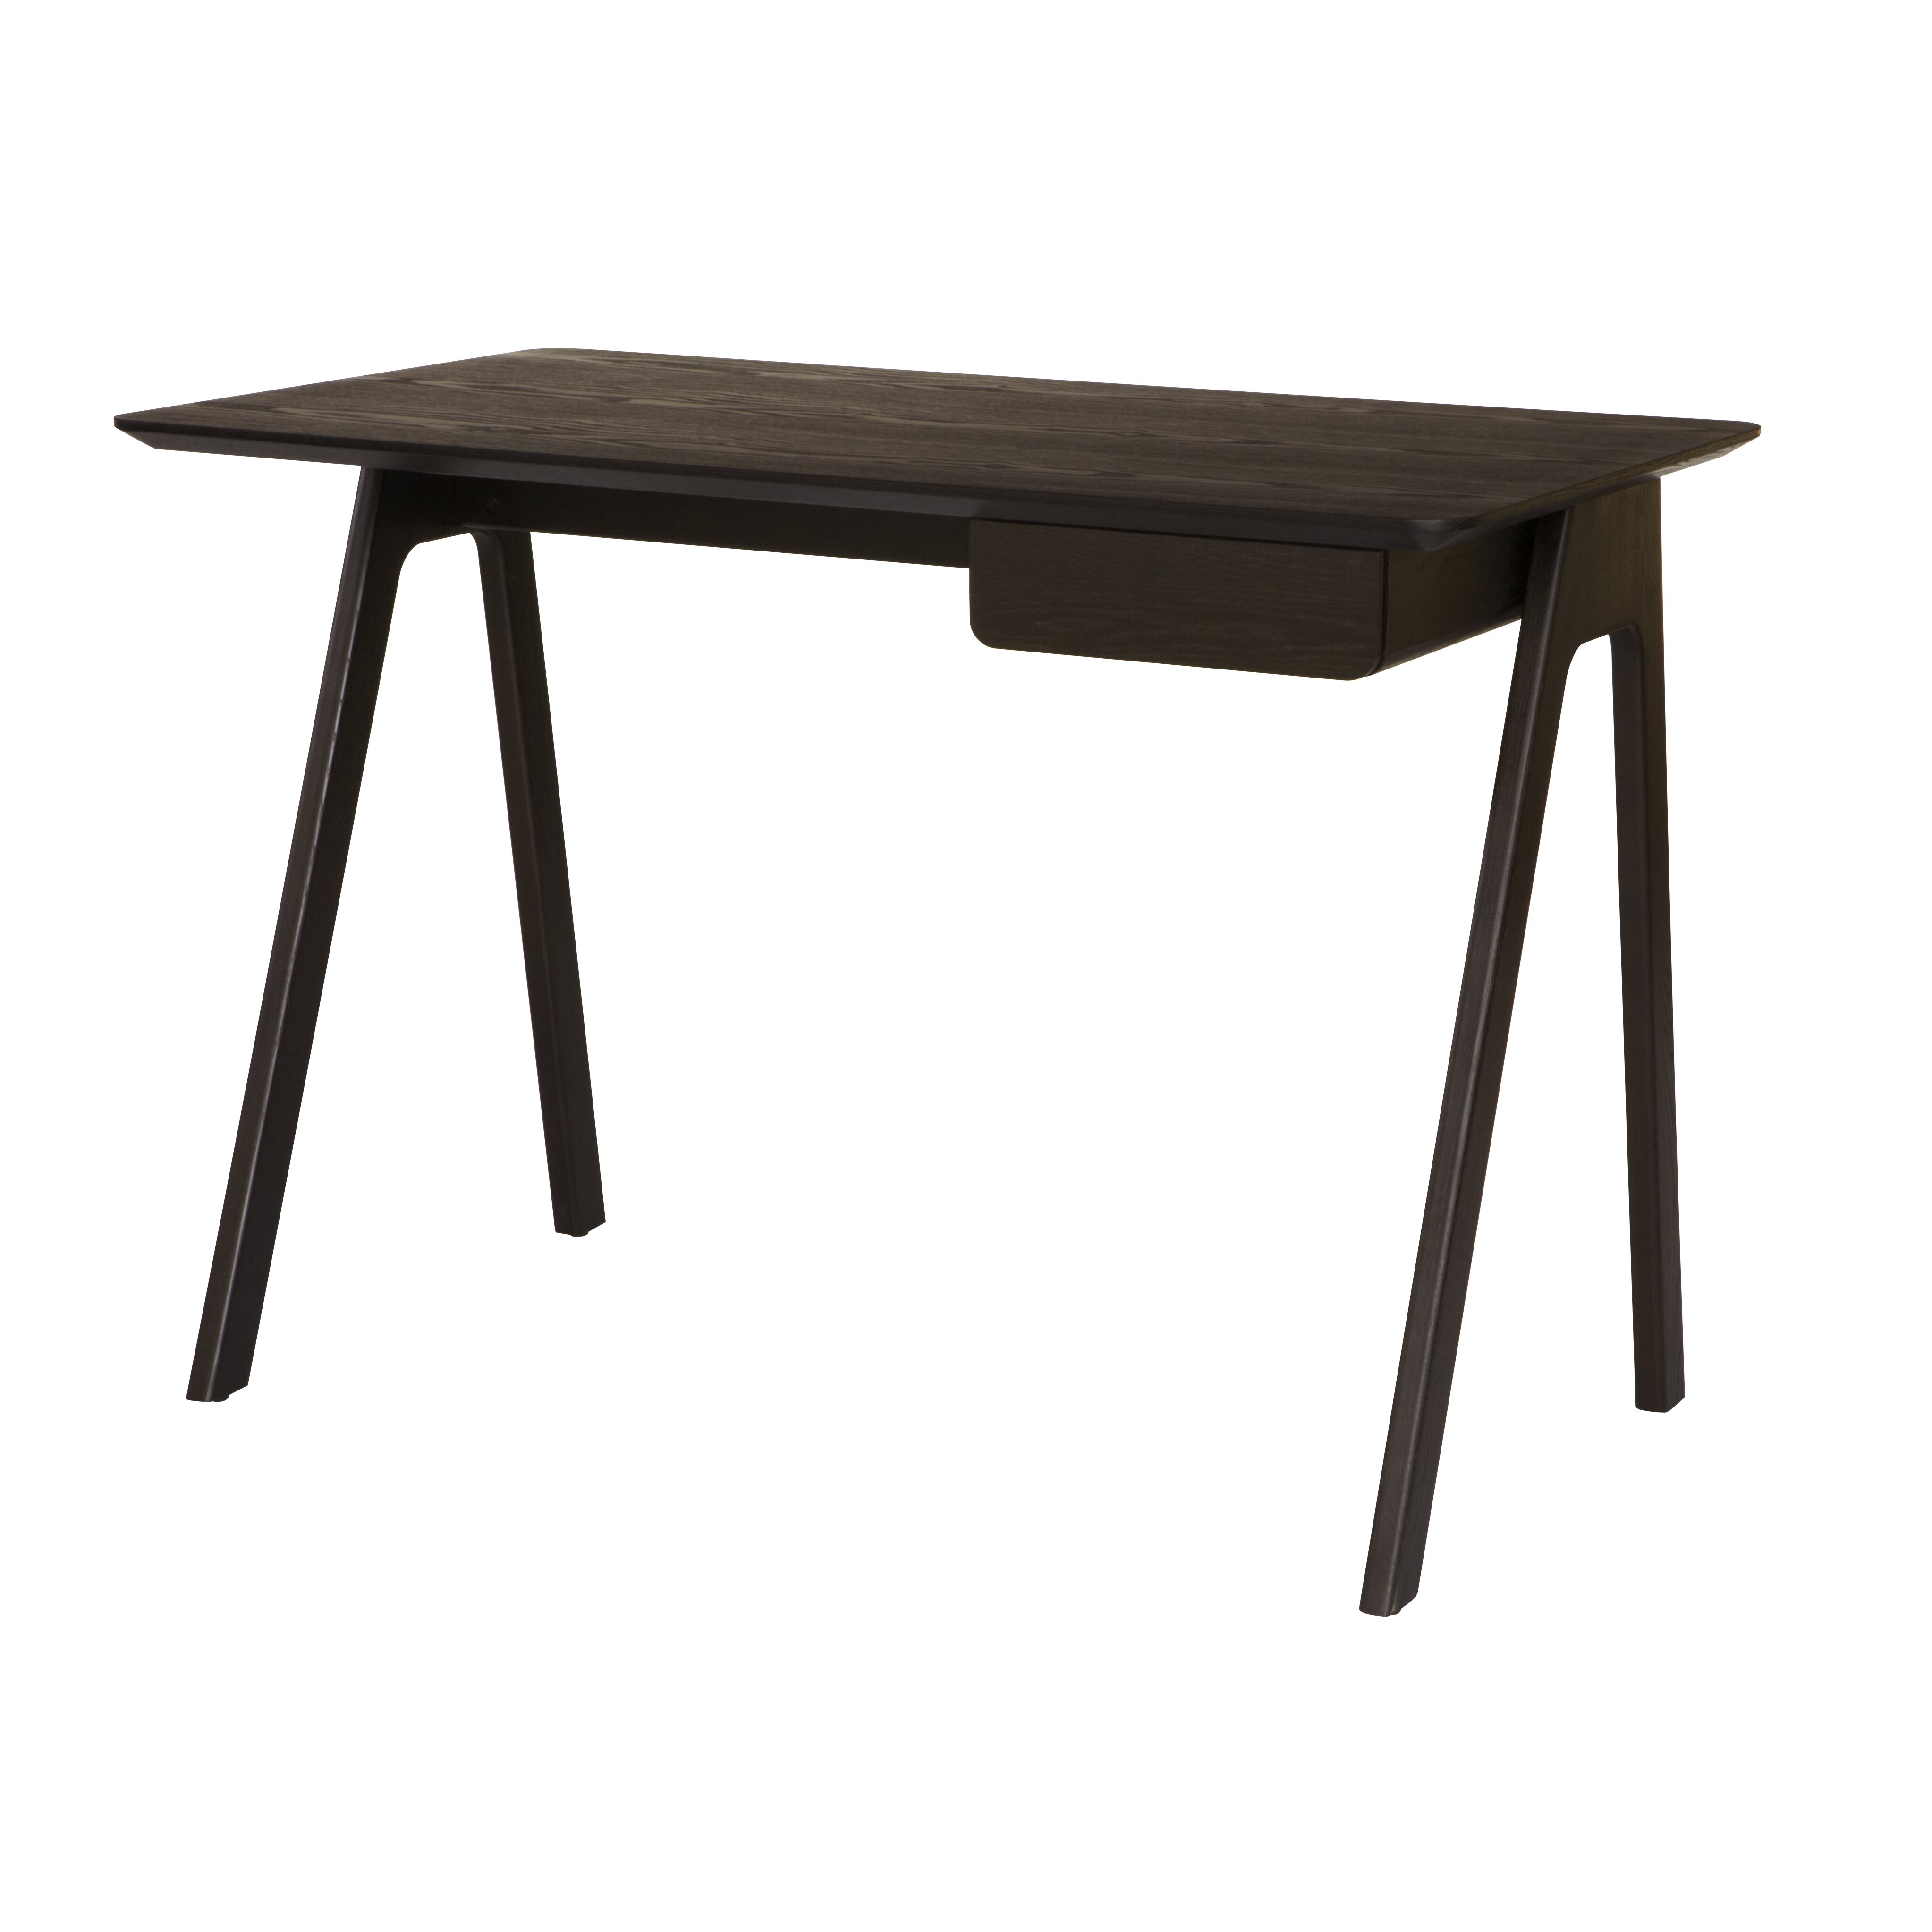 Stash Writing Desk in Graphite & Reviews | AllModern - Blu Dot Stash Writing Desk in Graphite